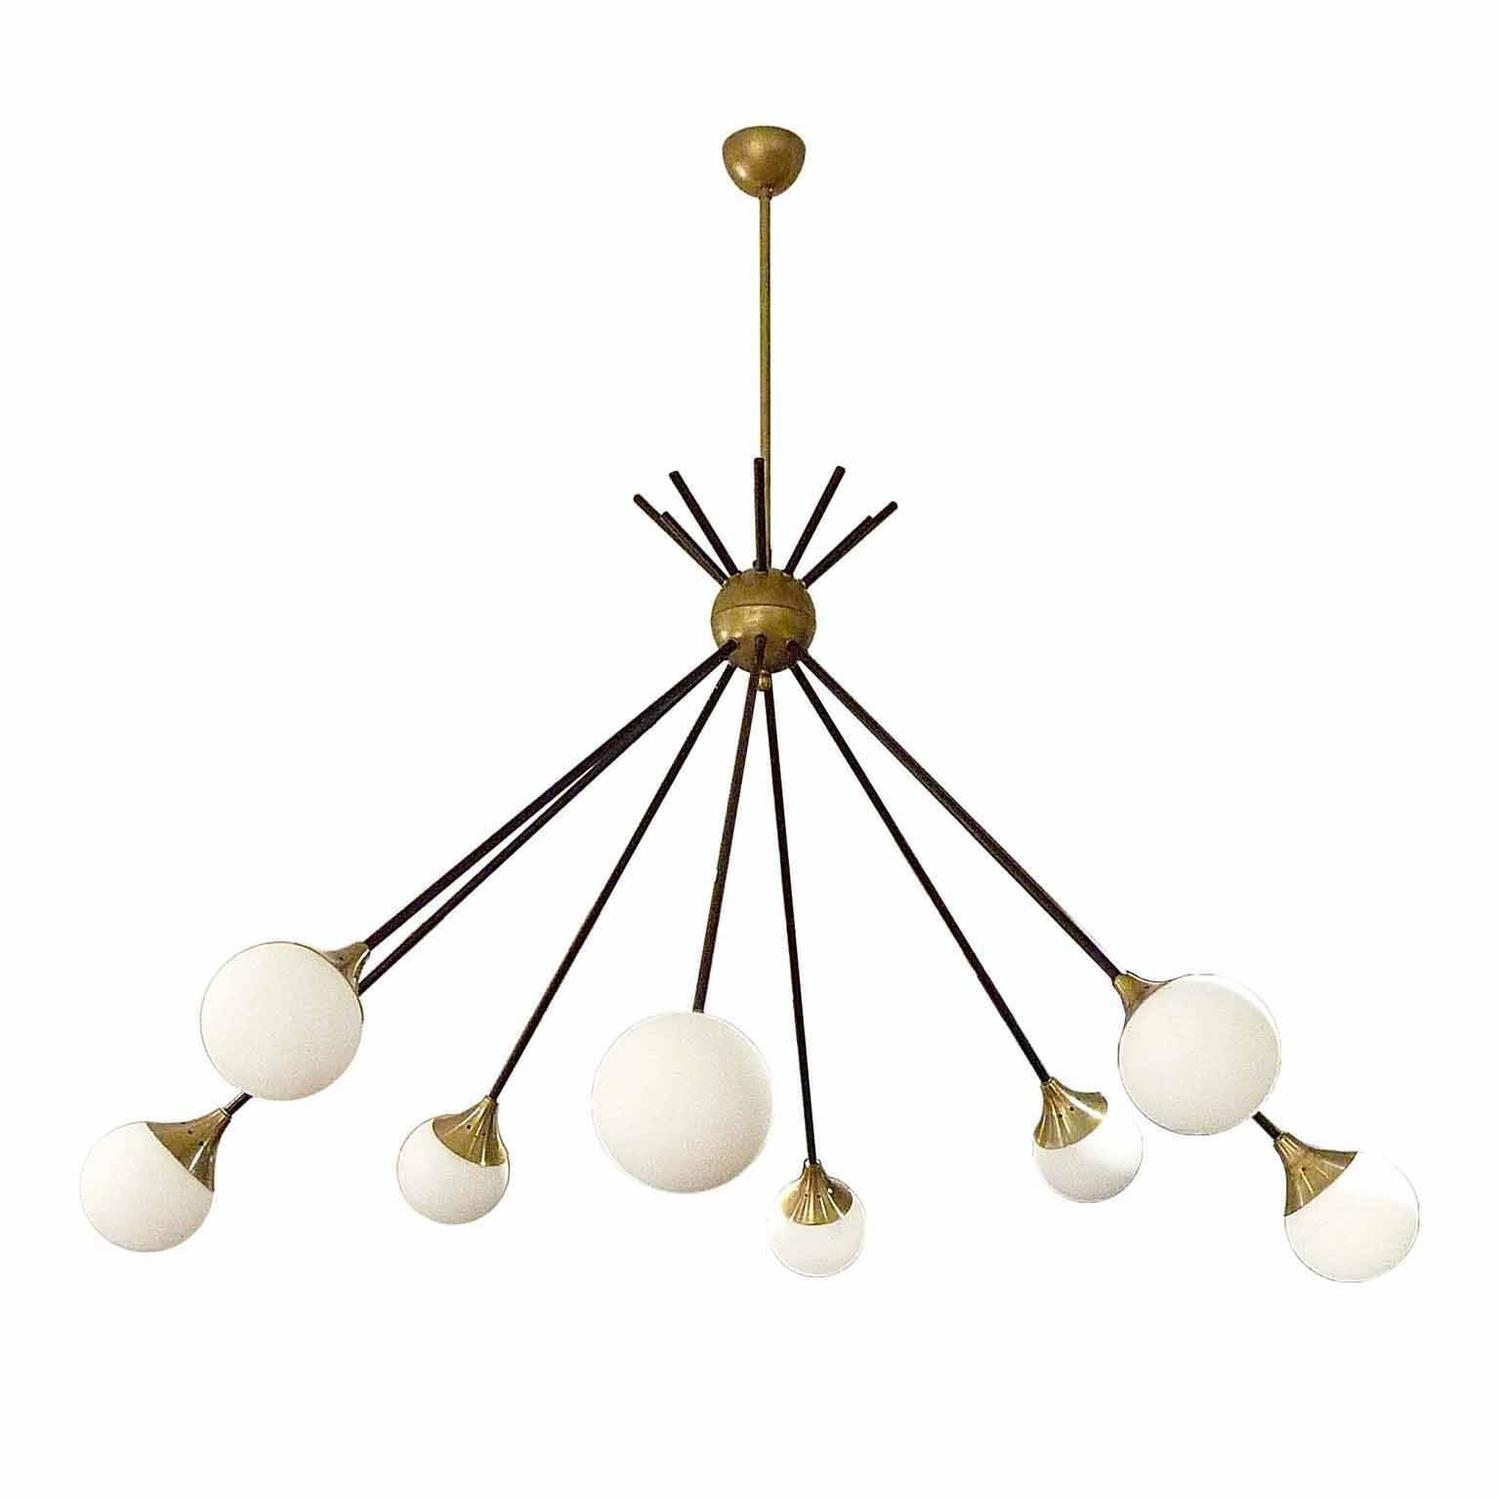 Very Elegant Eight Light Italian Chandelier In The Style Of Intended For Italian Chandelier Style (View 9 of 15)